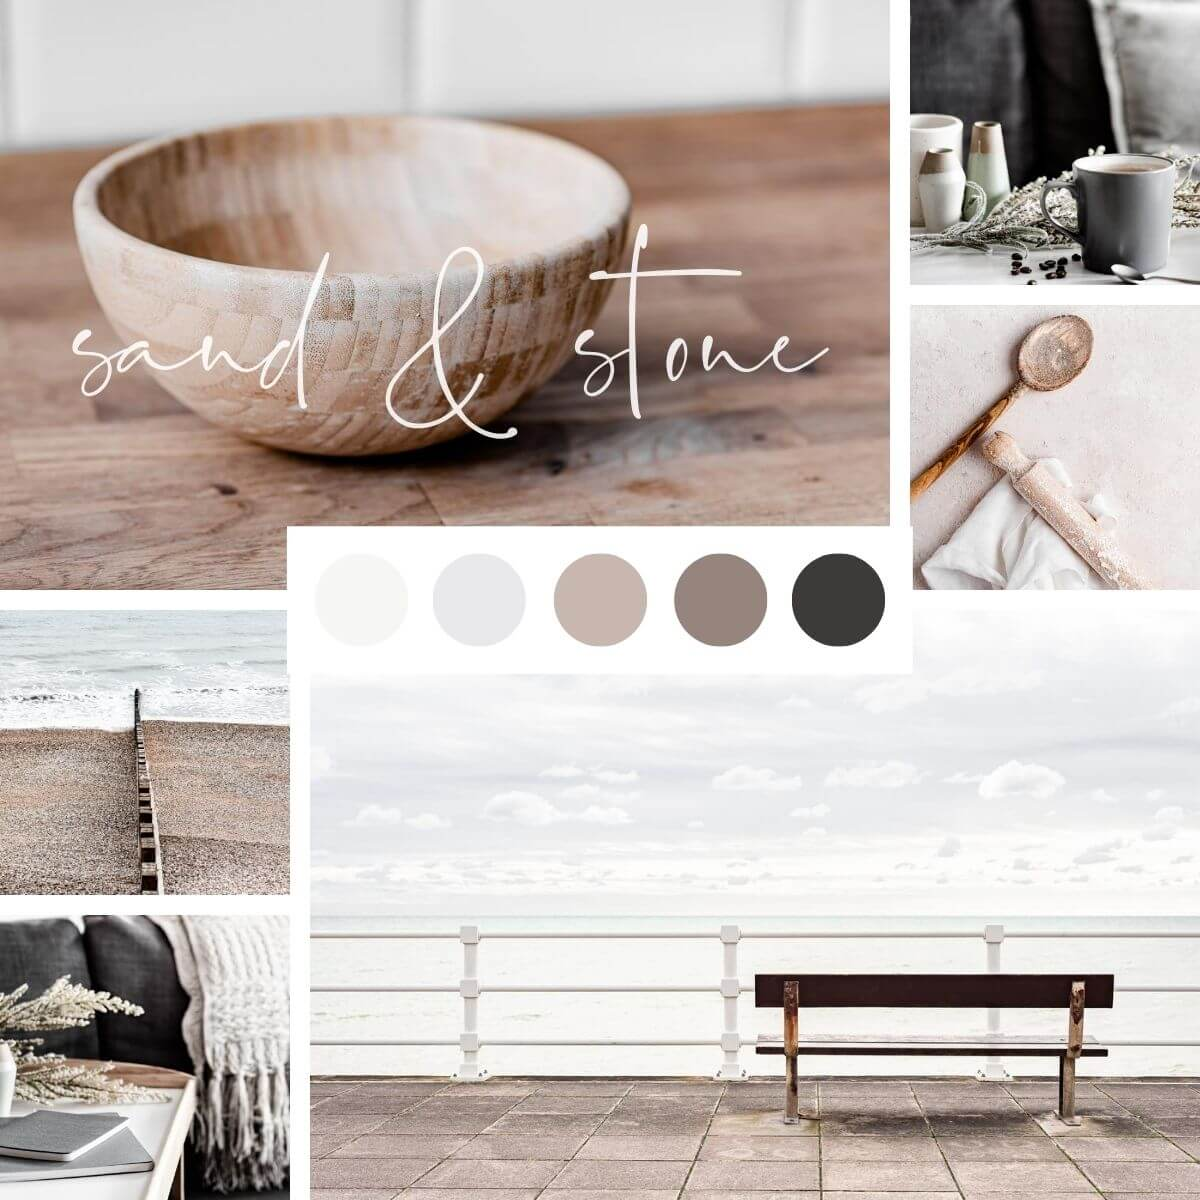 Natural Colours Inspo - Sand & Stone